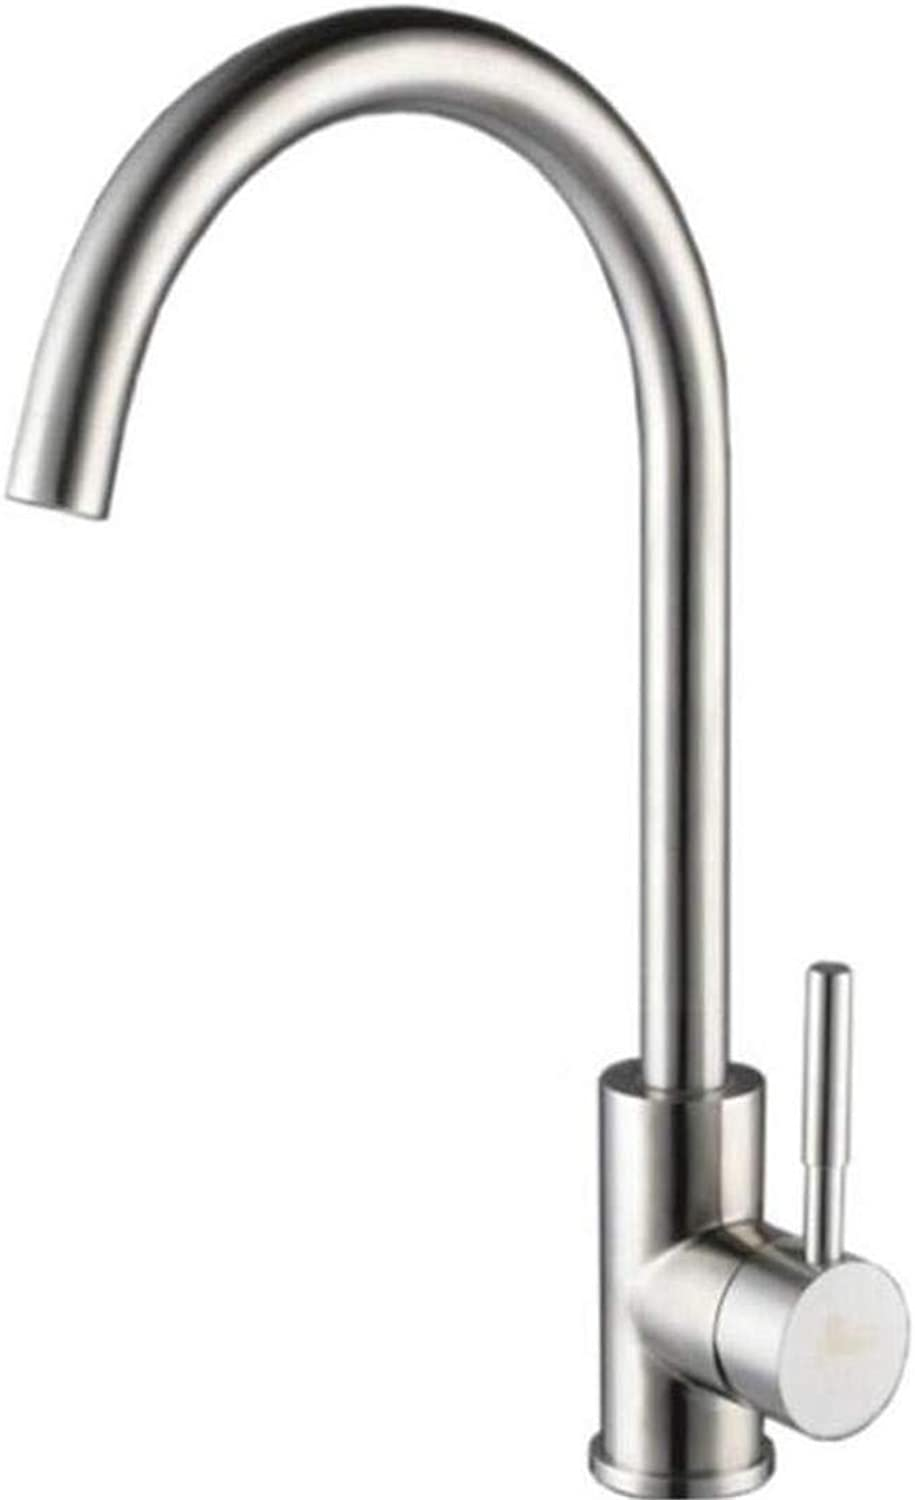 Taps Kitchen Sinktaps Mixer Swivel Faucet Sink Lead-Free 304 Stainless Steel Kitchen Tap Wire Drawing